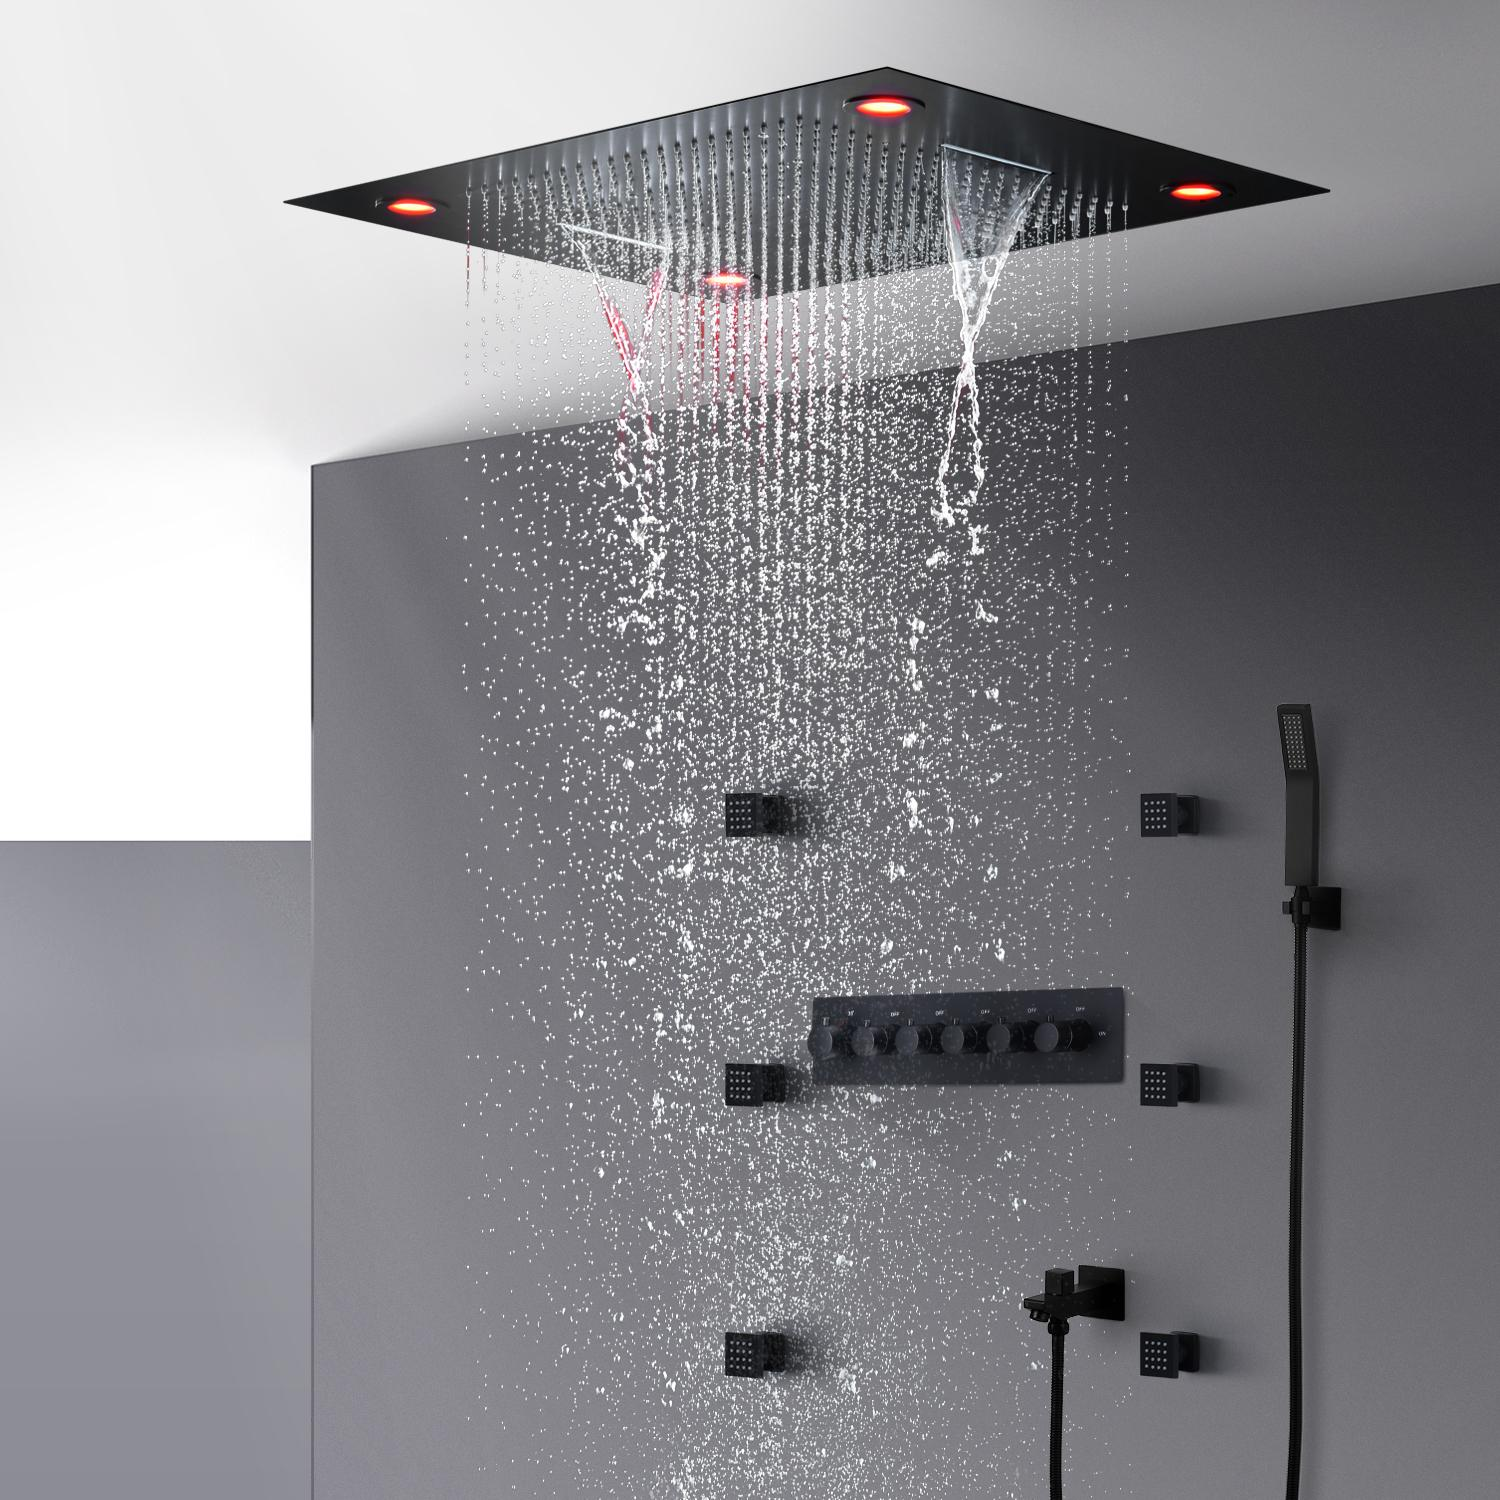 2020 Bathroom Black Shower Faucet Set Thermostatic Shower Bath Mixer Valve Luxury Ceiling Led Large Rain Waterfall Shower Head System 600 800mm From Jmhm 1 500 63 Dhgate Com